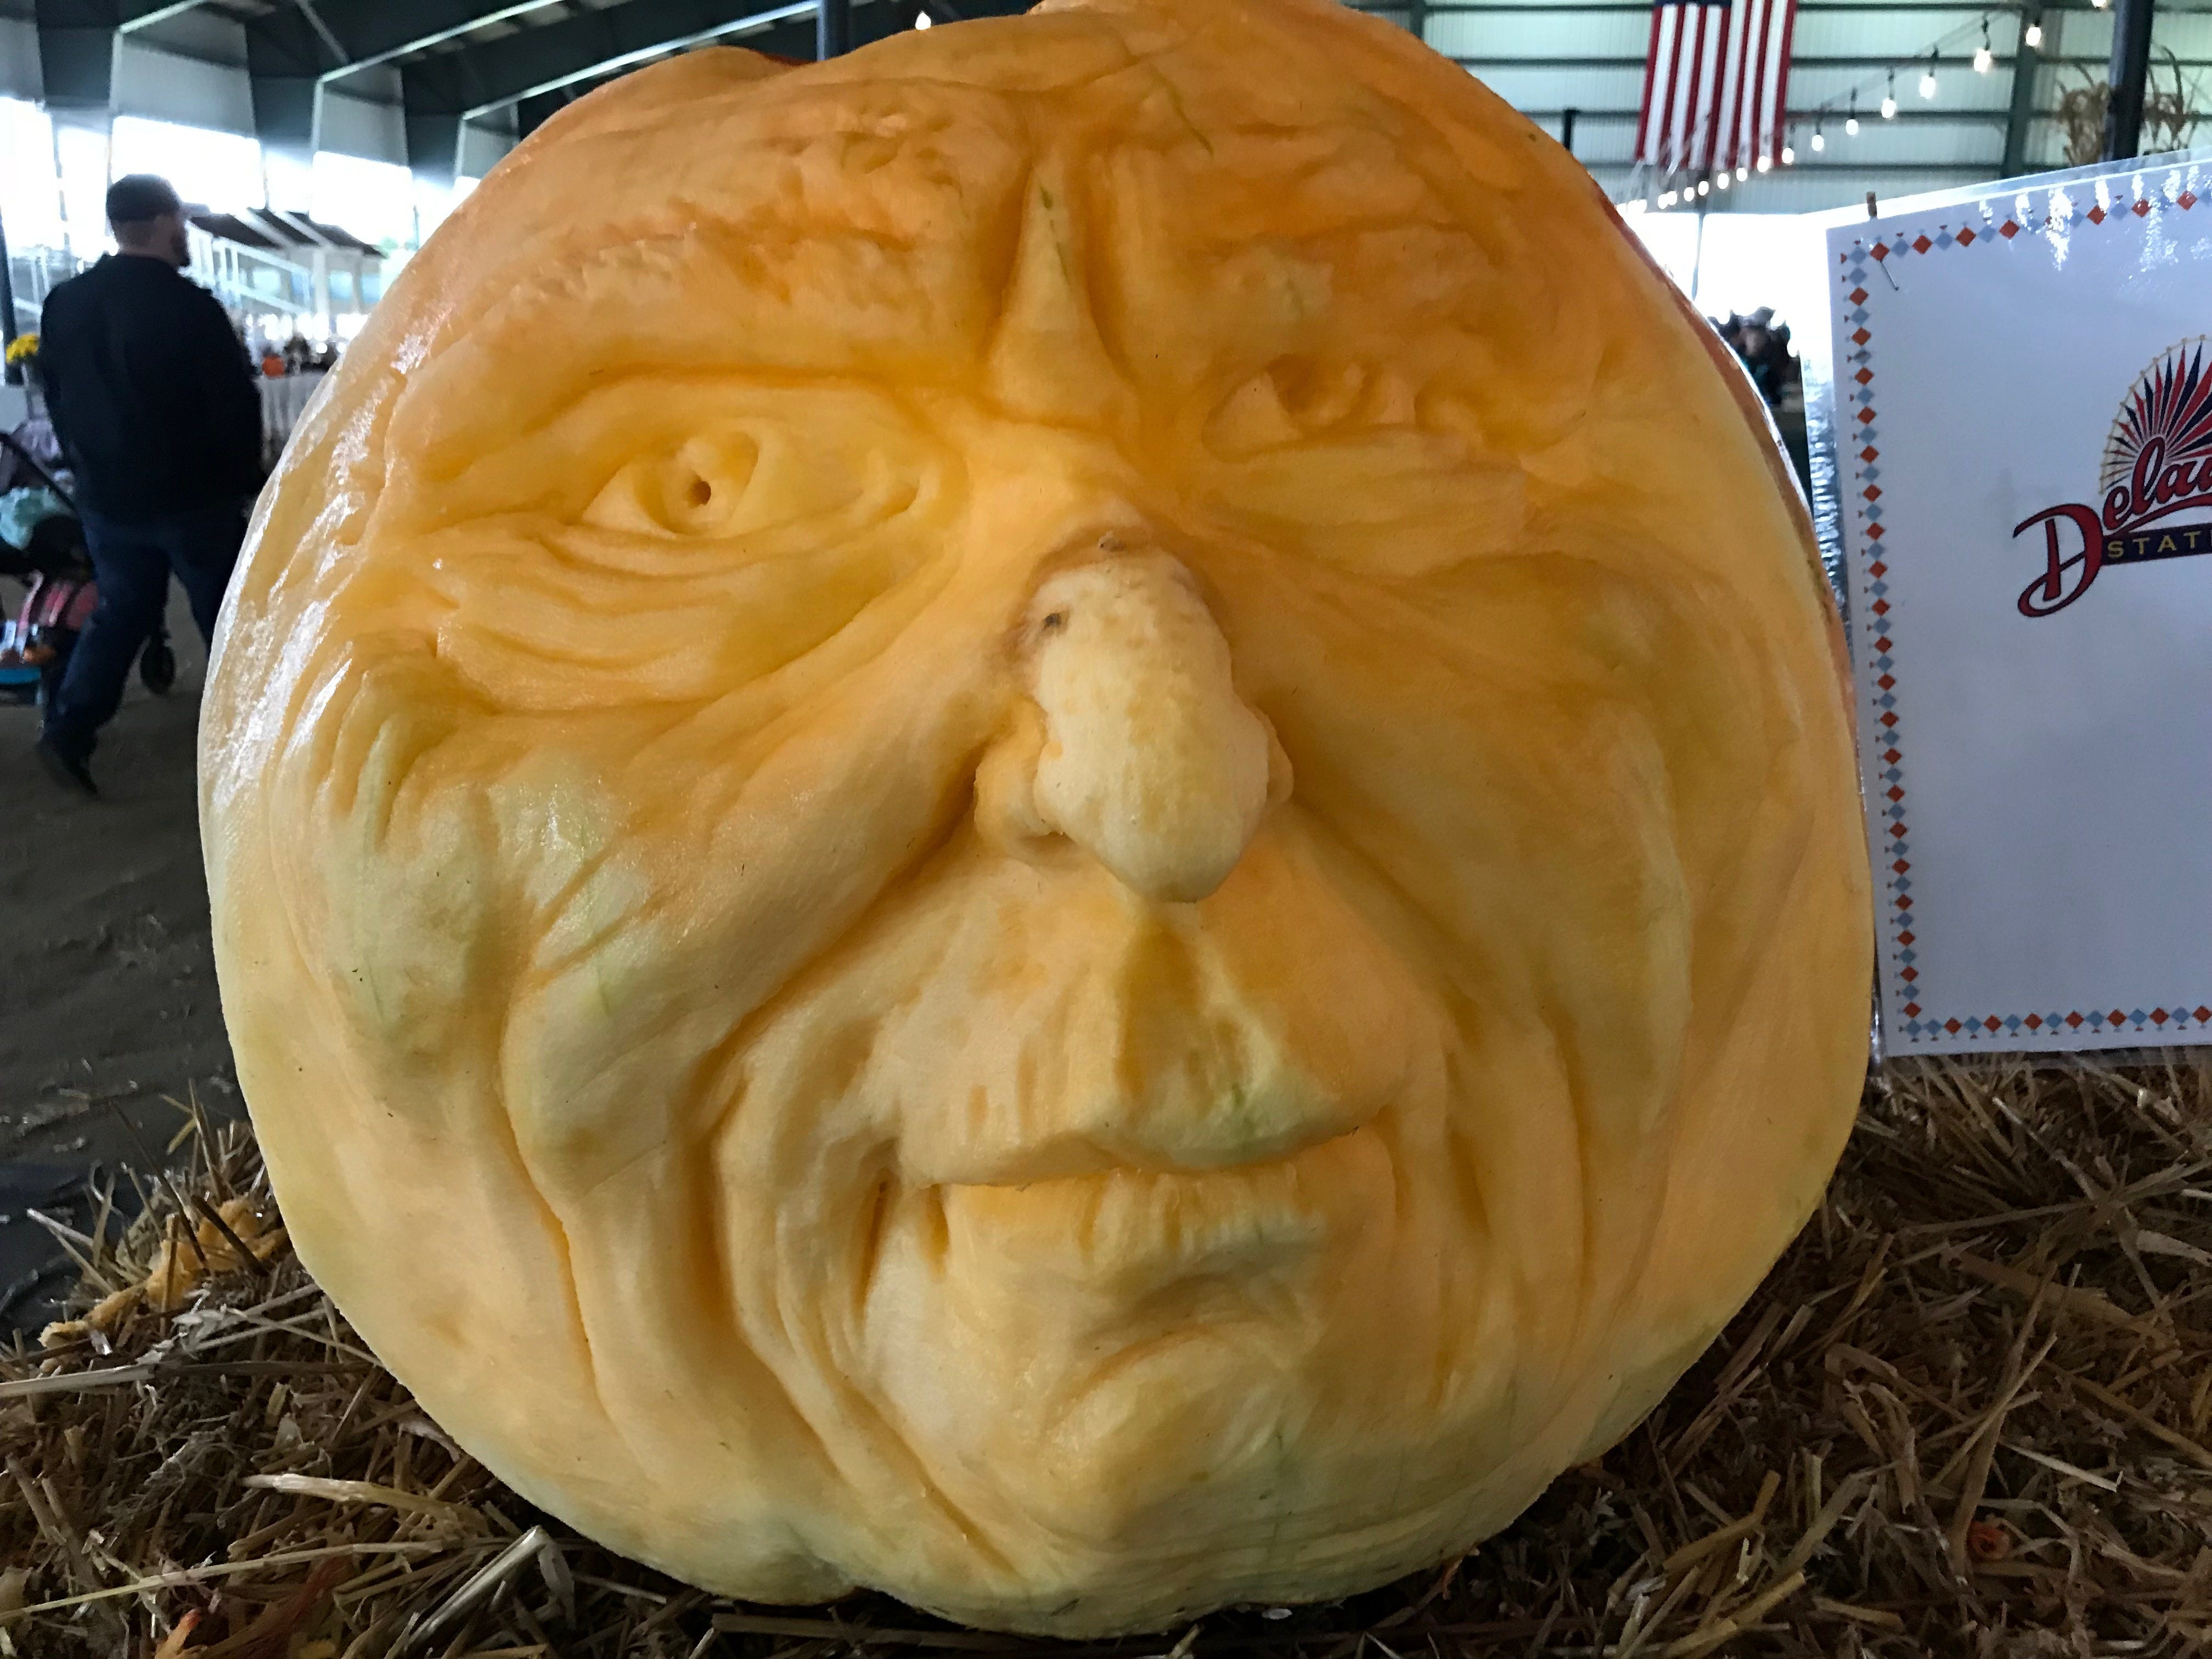 Patrick Cabry, the guest carver at the first Great Delaware Pumpkin Carve, created this gentleman, including adding a bit to his nose.